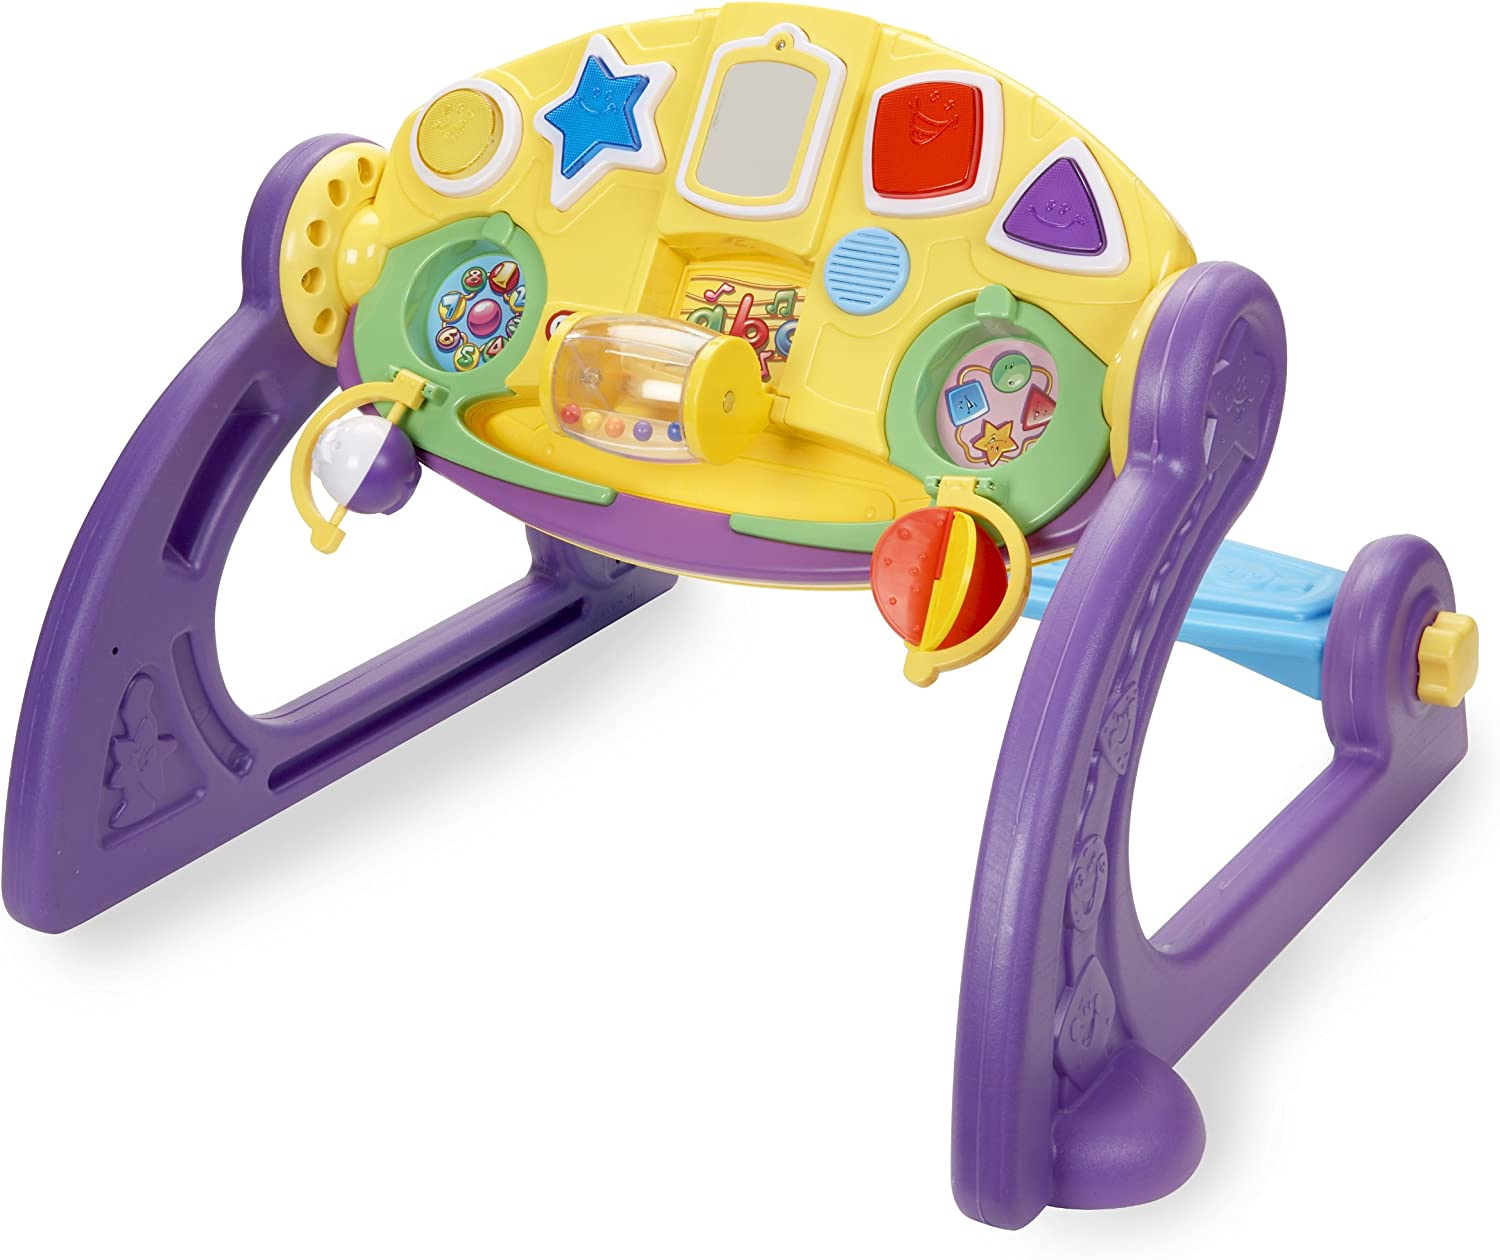 Buy little tikes 5-in-1 adjustable gym, toys for kids, 1 year.